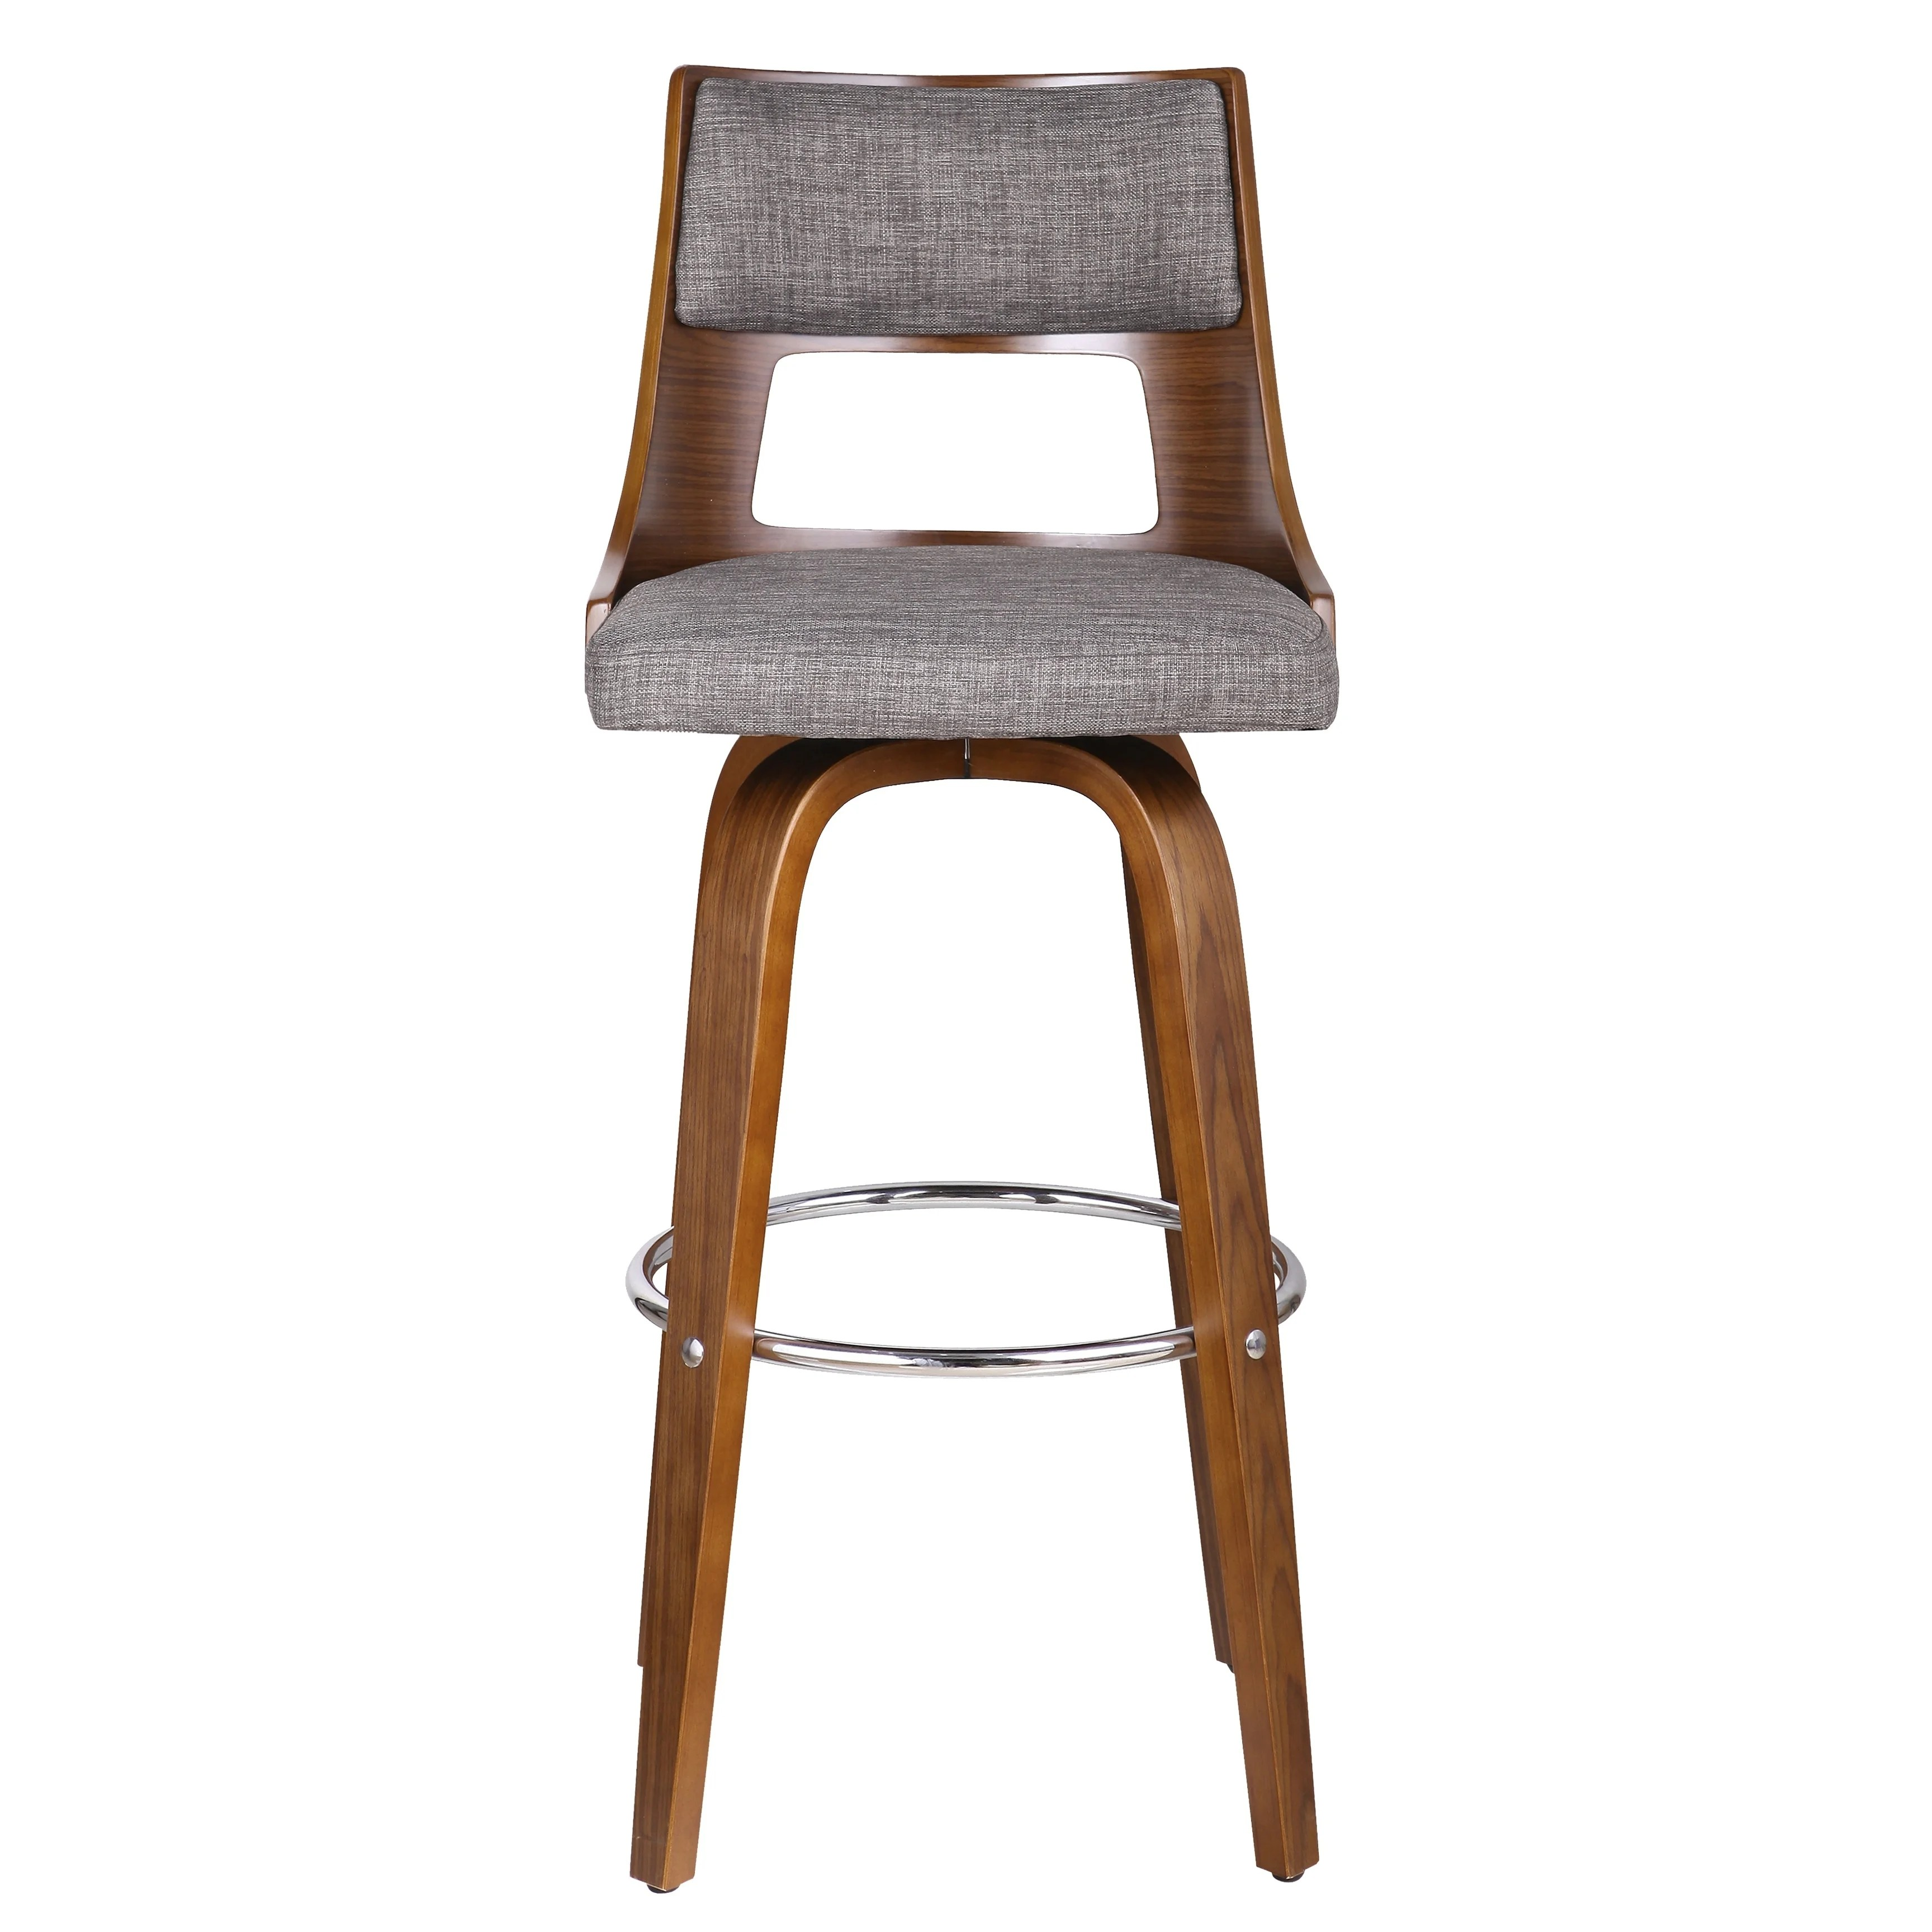 Wood Bar Chairs Porthos Home Piers Wood Bar Stools Beech Legs And Fabric Upholstery